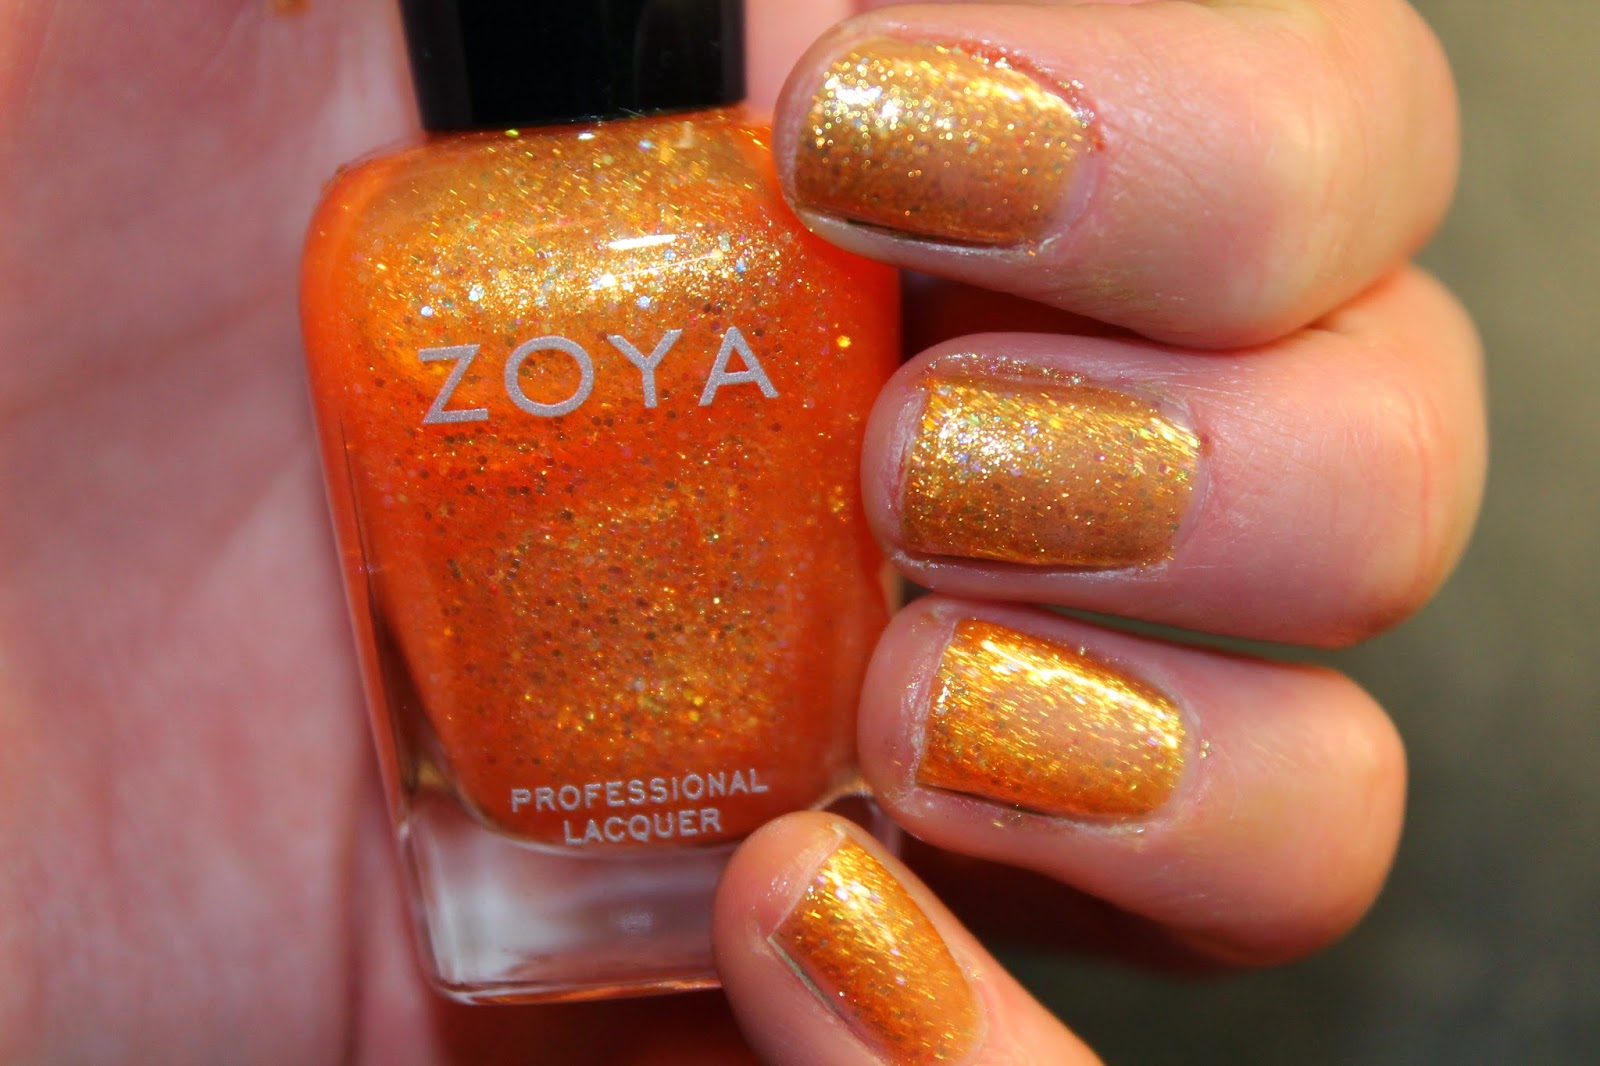 Zoya Nail Laquer Polish - Jesy Orange Bubbly Collection Swatch